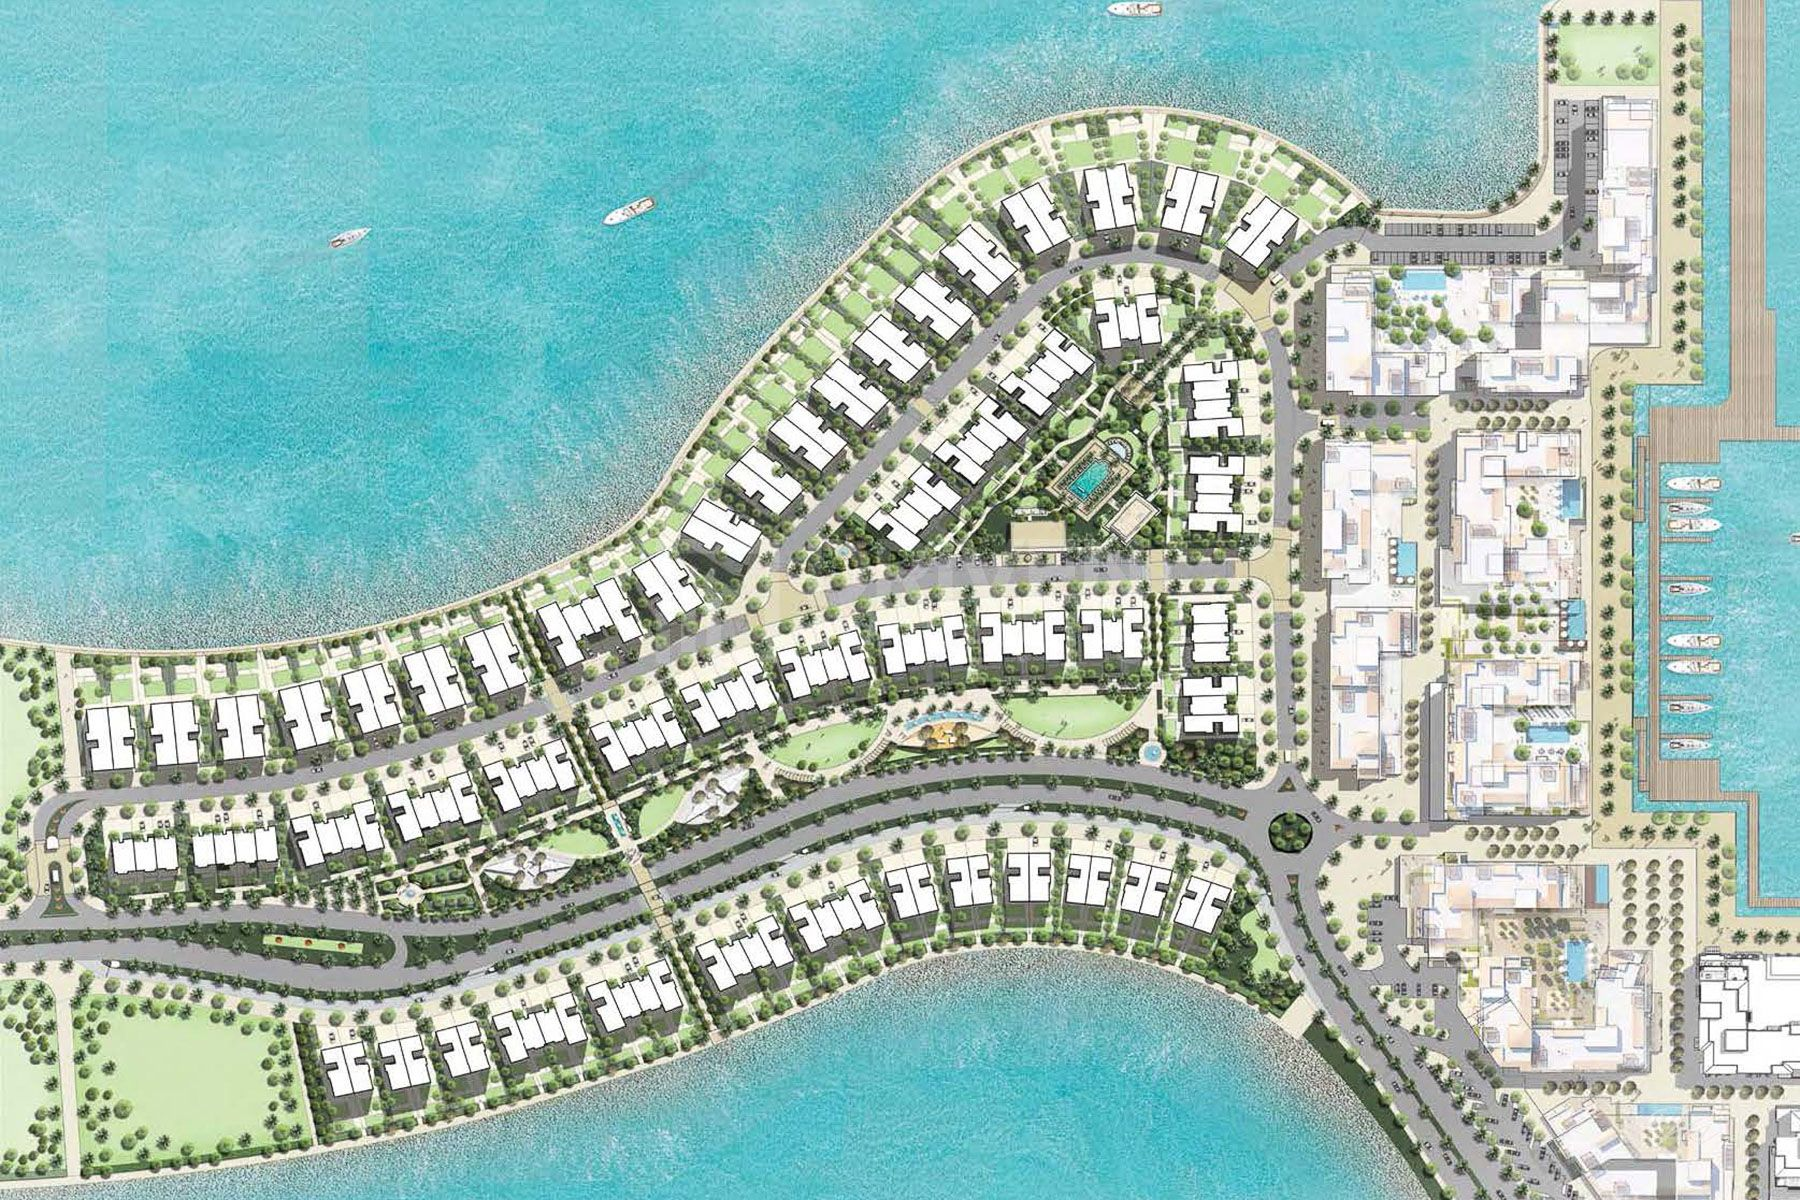 Townhouse for Sale in Sur La Mer - Jumeirah